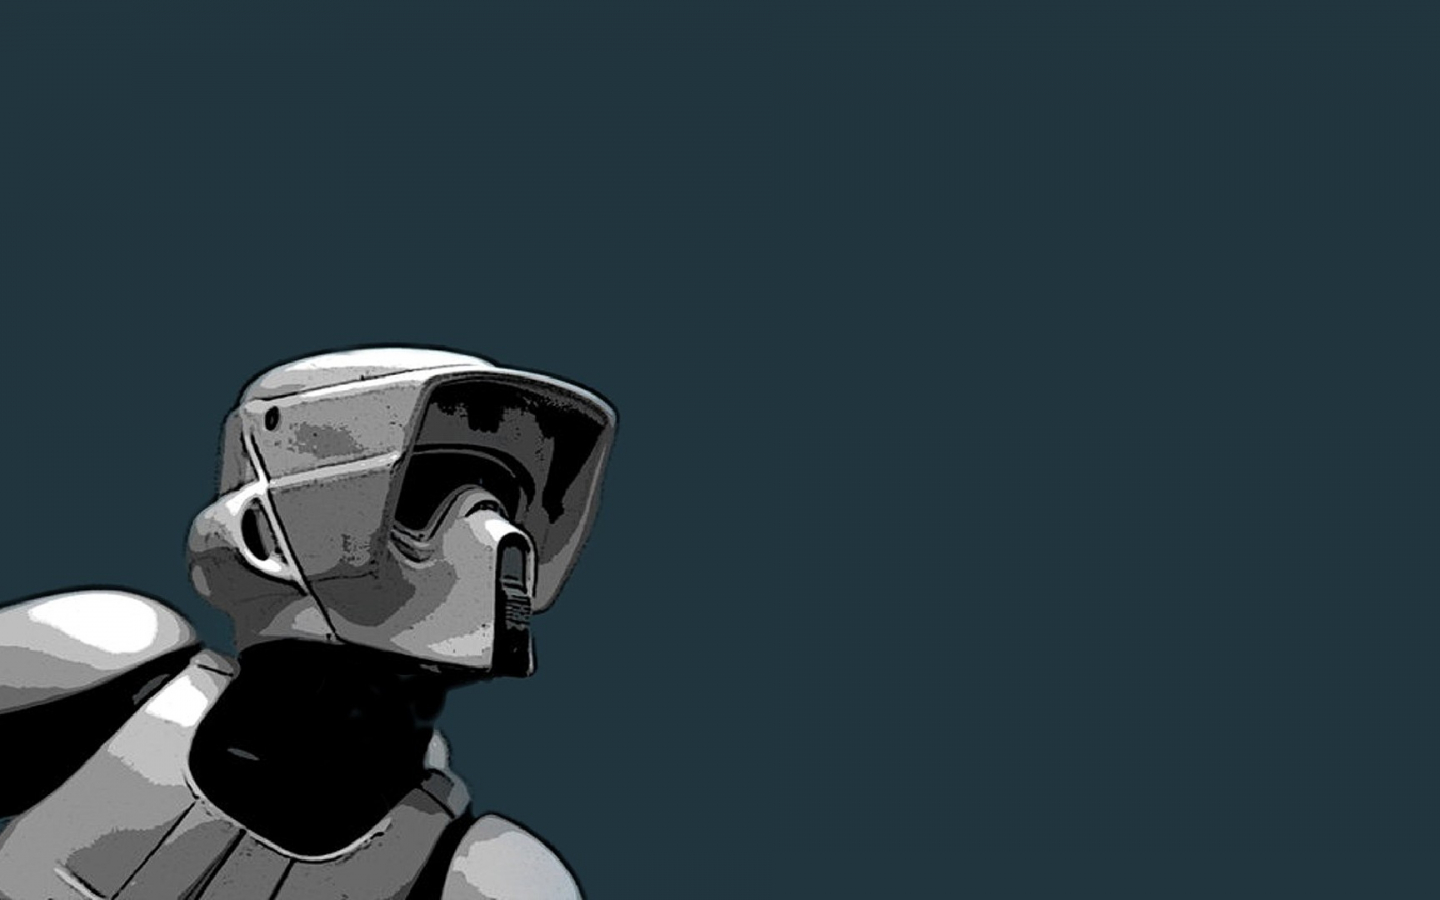 Free Download Star Wars Wallpaper 1920x1080 Star Wars Minimalistic Artwork Scout 1920x1080 For Your Desktop Mobile Tablet Explore 72 1920x1080 Star Wars Wallpaper Free Star Wars Wallpaper Death Star